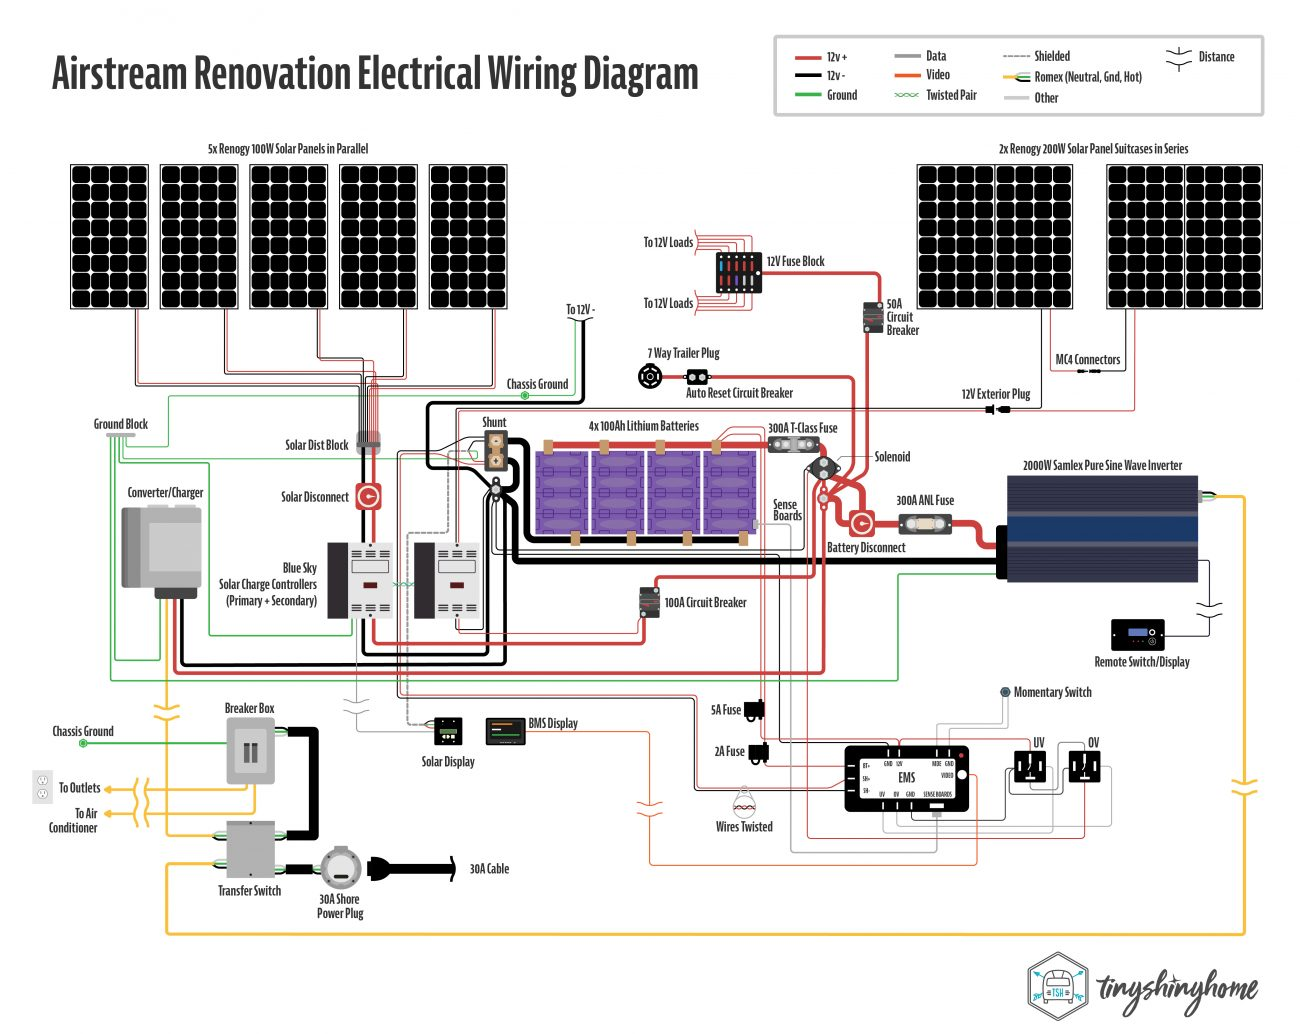 Off-Grid Airstream Renovation Electrical Wiring Diagram